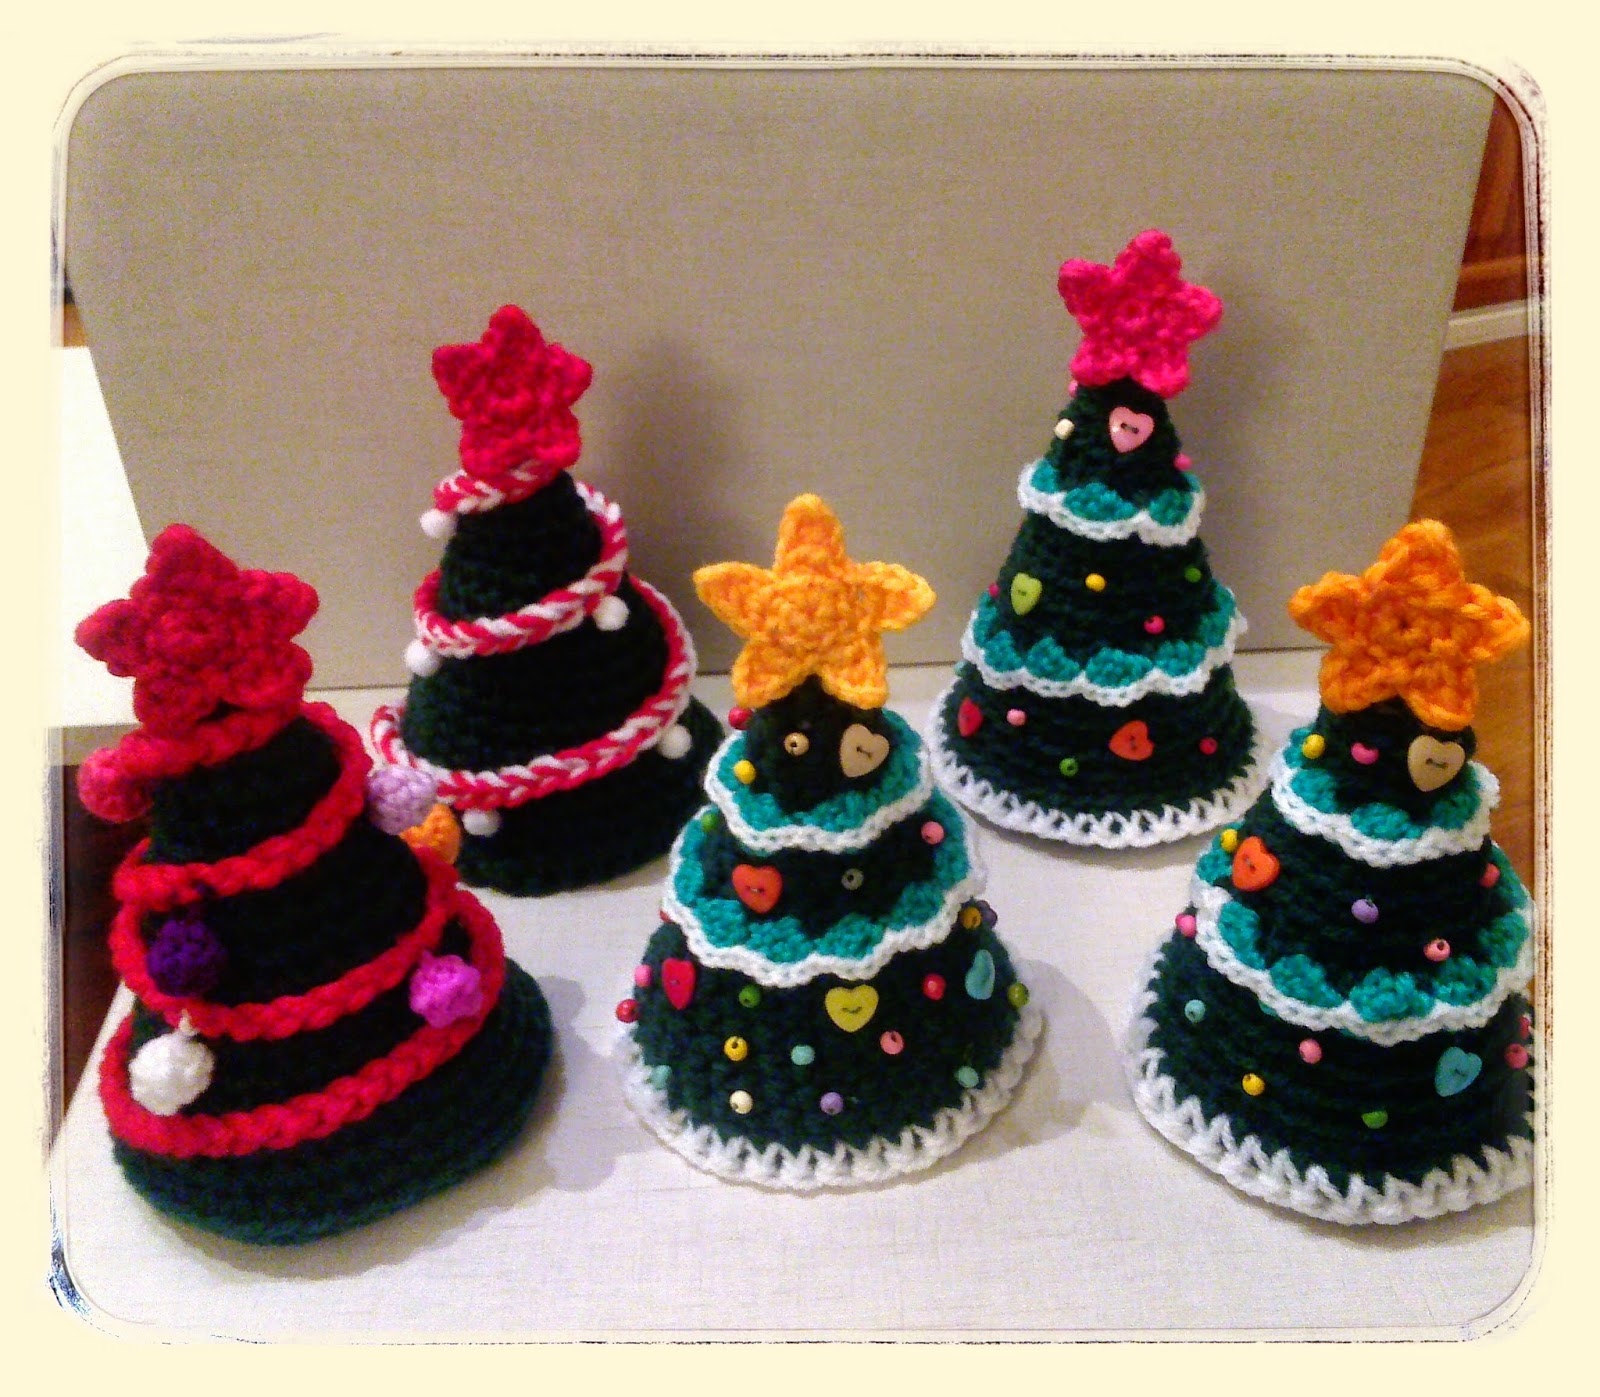 ARBOL DE NAVIDAD A CROCHET Handbox Craft Lovers Comunidad DIY